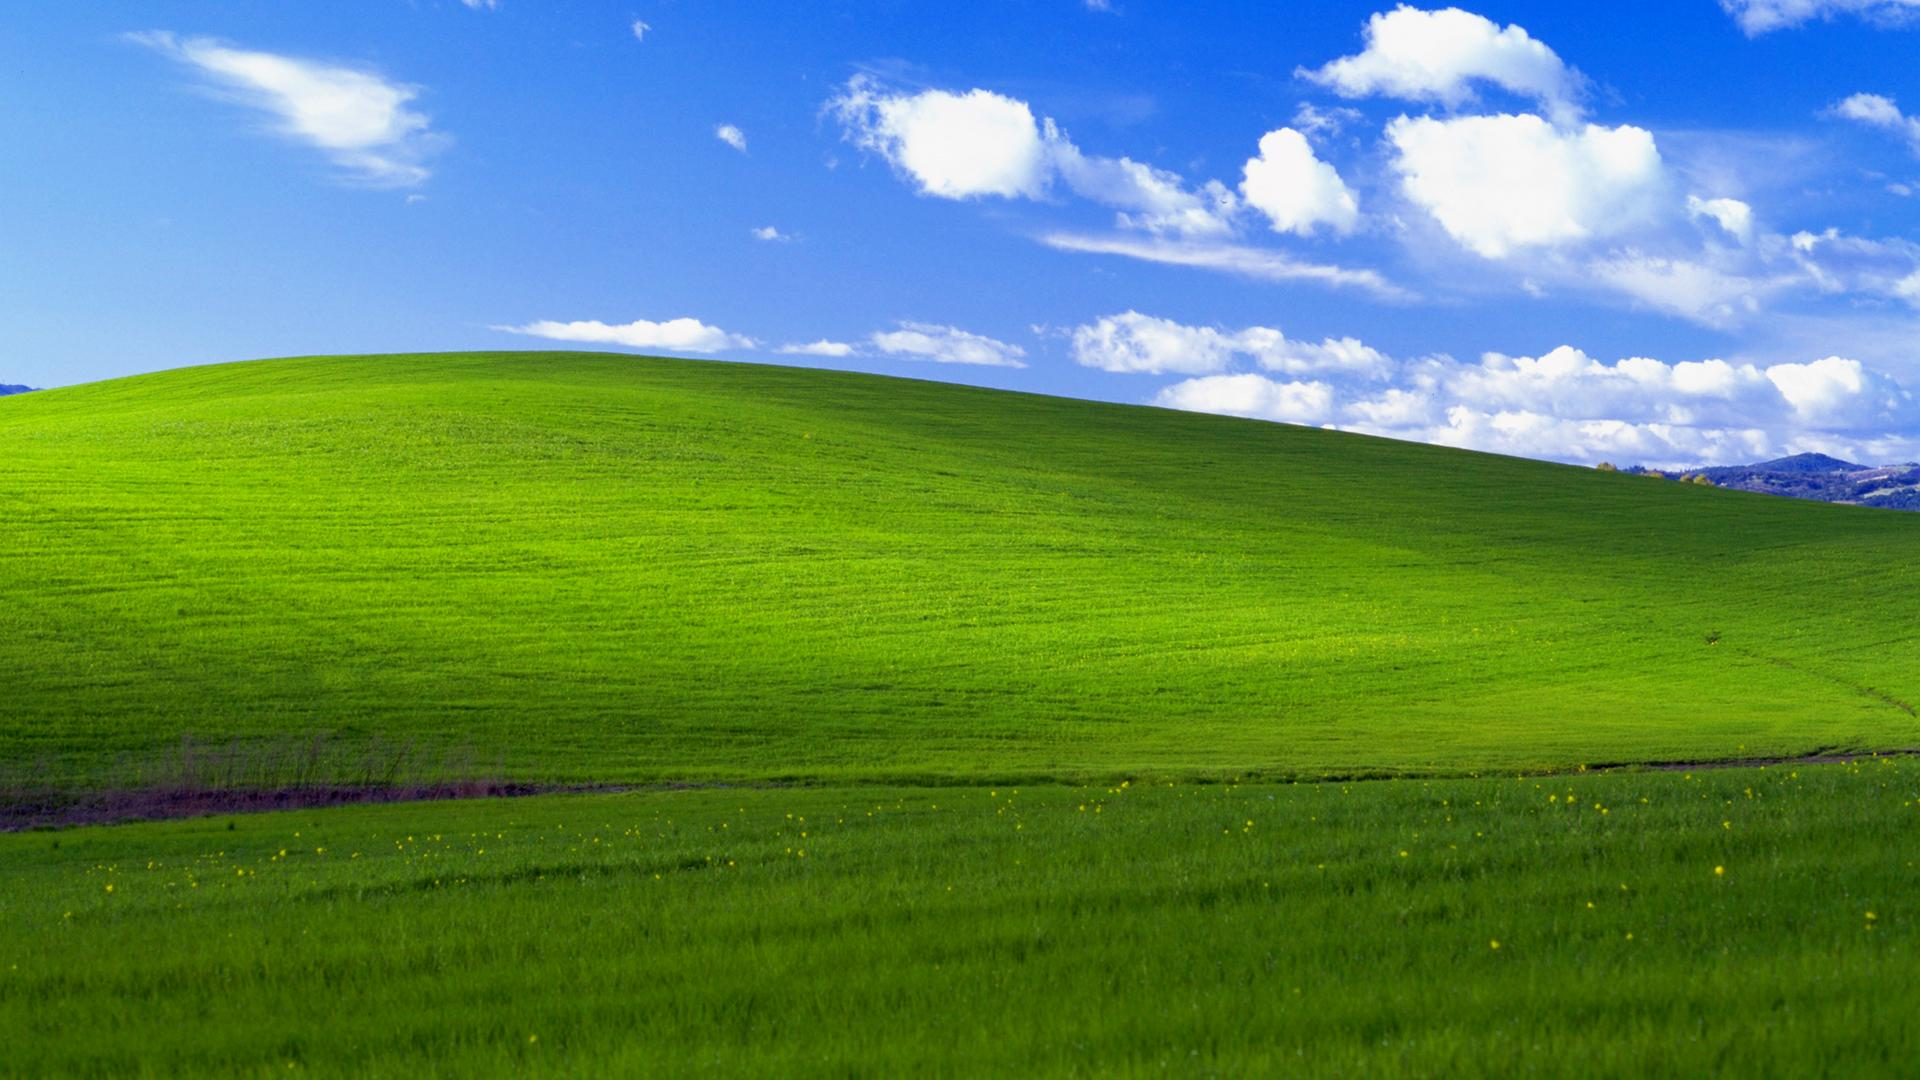 Windows XP wallpaper Bliss. Virtual background to use on Zoom, Microsoft Teams, Skype, Google Meet, WebEx or any other compatible app.